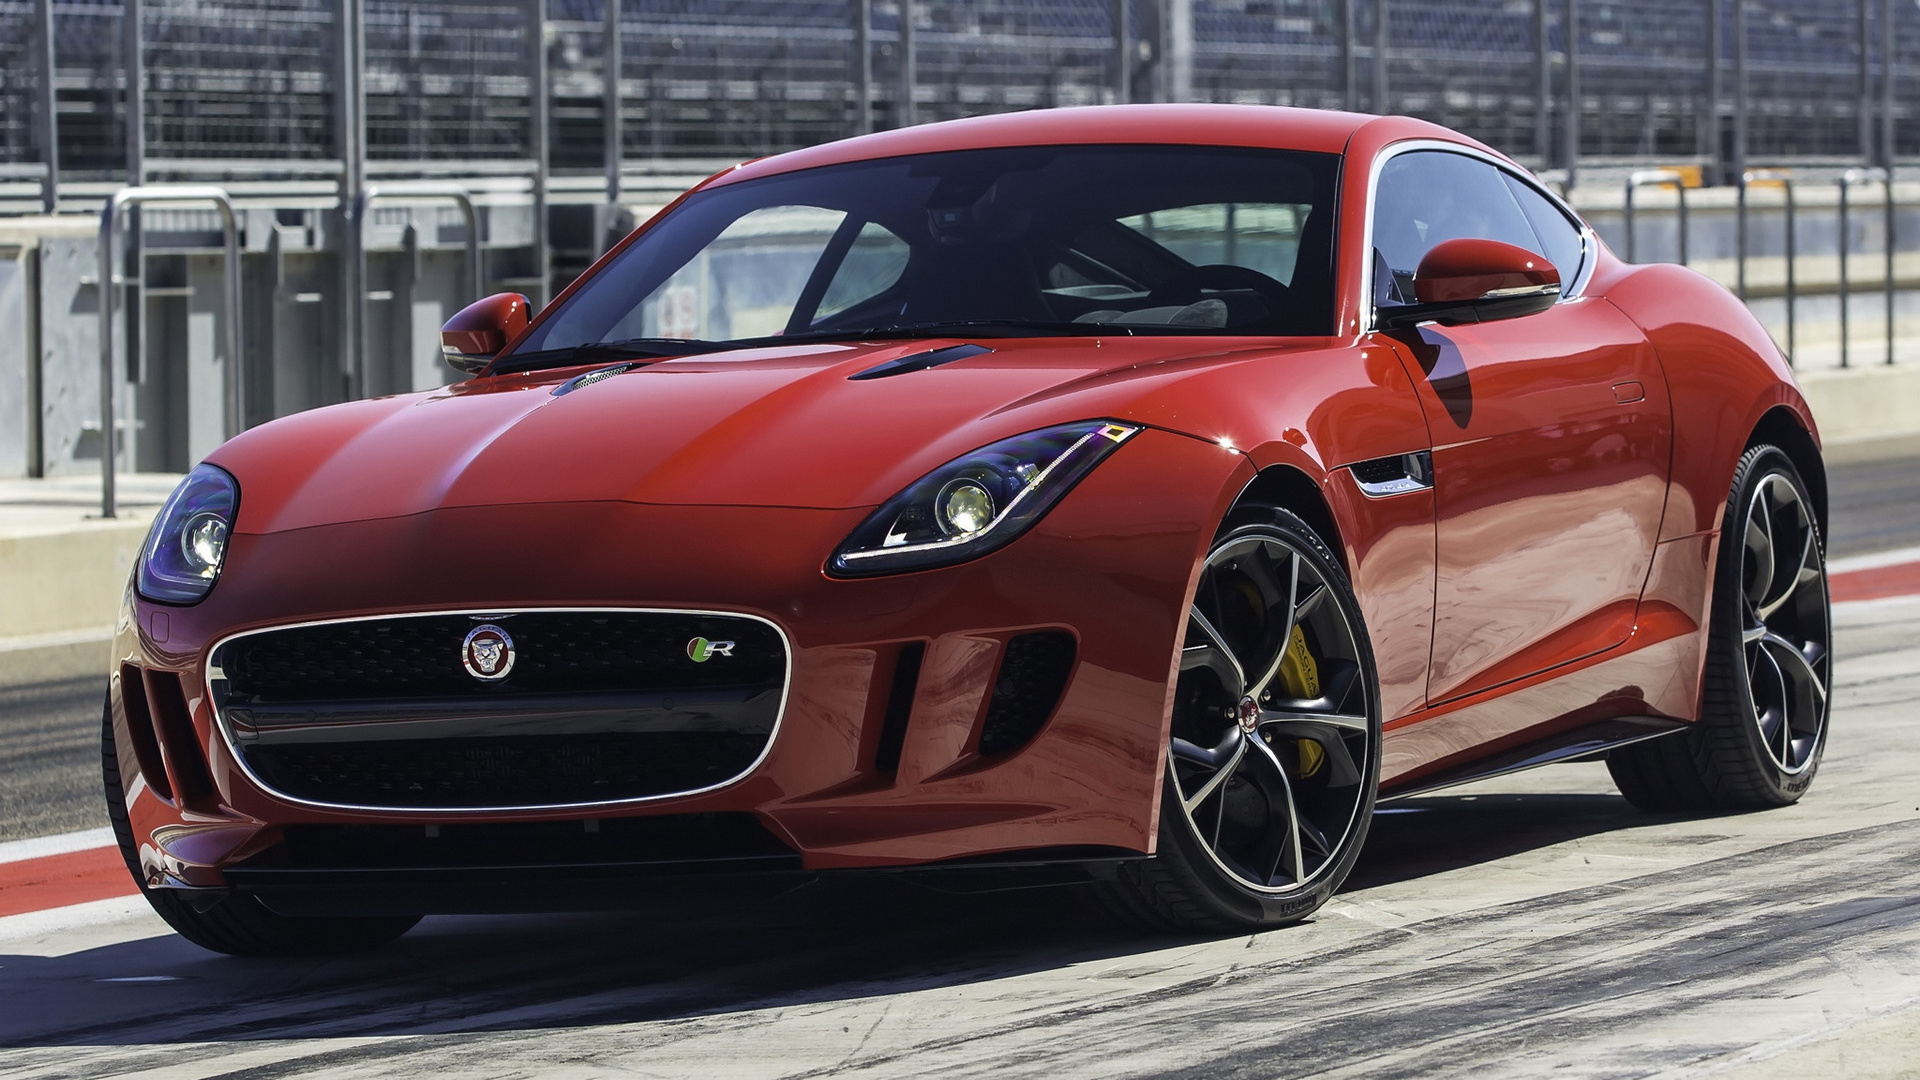 Jaguar F Type Coupe >> 2014 Jaguar F-Type R Coupe - Wallpapers and HD Images ...